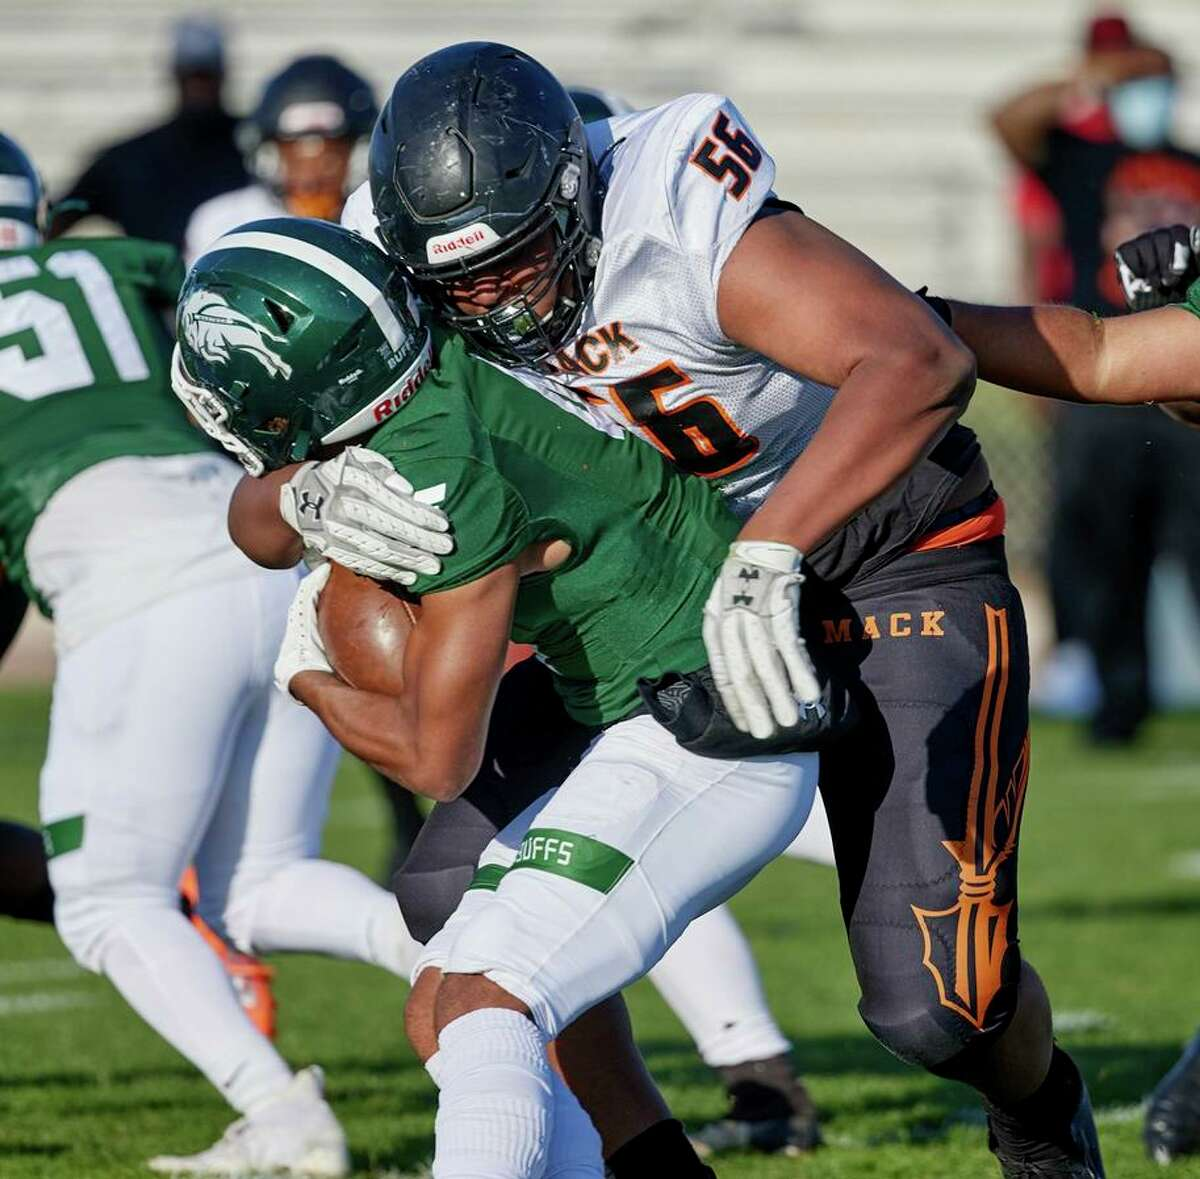 McClymonds defensive linemanSimeon Mitchell, here in a game in April against Manteca, is part of a defense that has allowed only 14 points in two games this season.